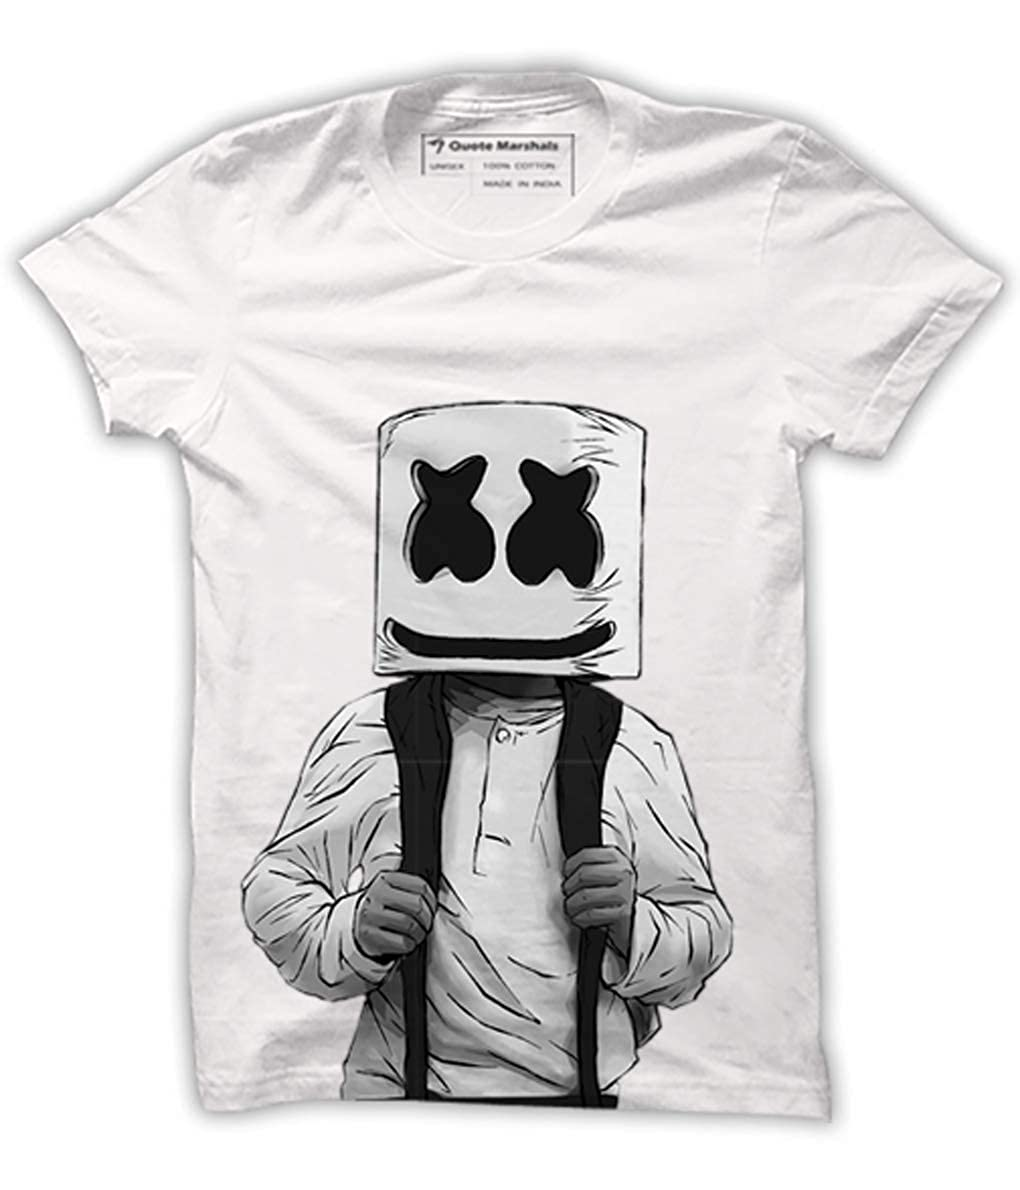 Quote Marshals Music Marshmello DJ White Cotton T-Shirt for Men s   Amazon.in  Clothing   Accessories 5d97b9d41f4